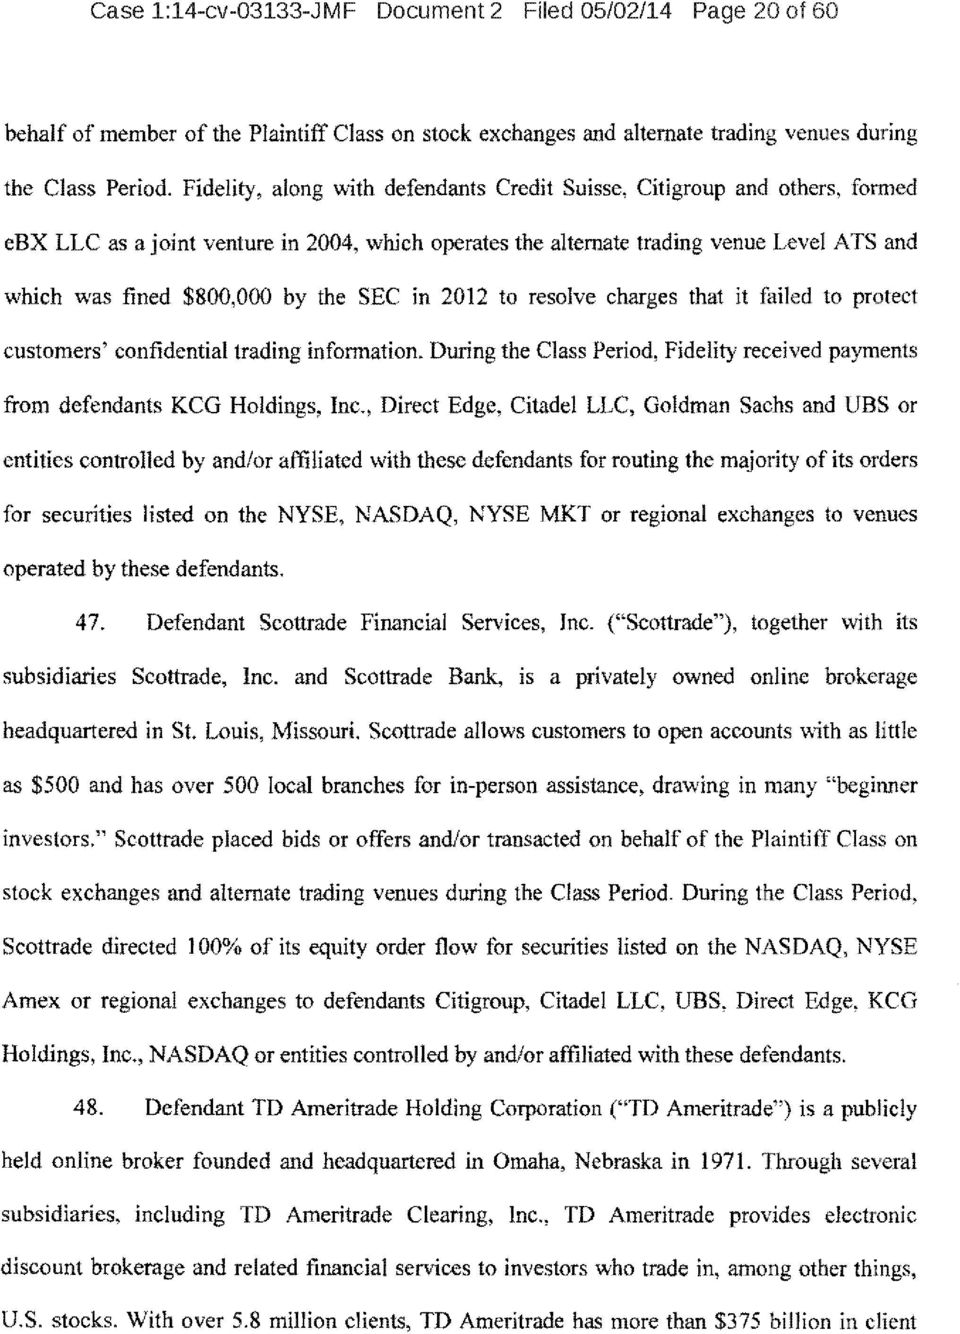 Citigroup and others, formed cbx LLC as a joint venture in 2004, which operates the alternate trading venue Level ATS and which was fined $800,000 by the SEC in 2012 to resolve charges that it failed